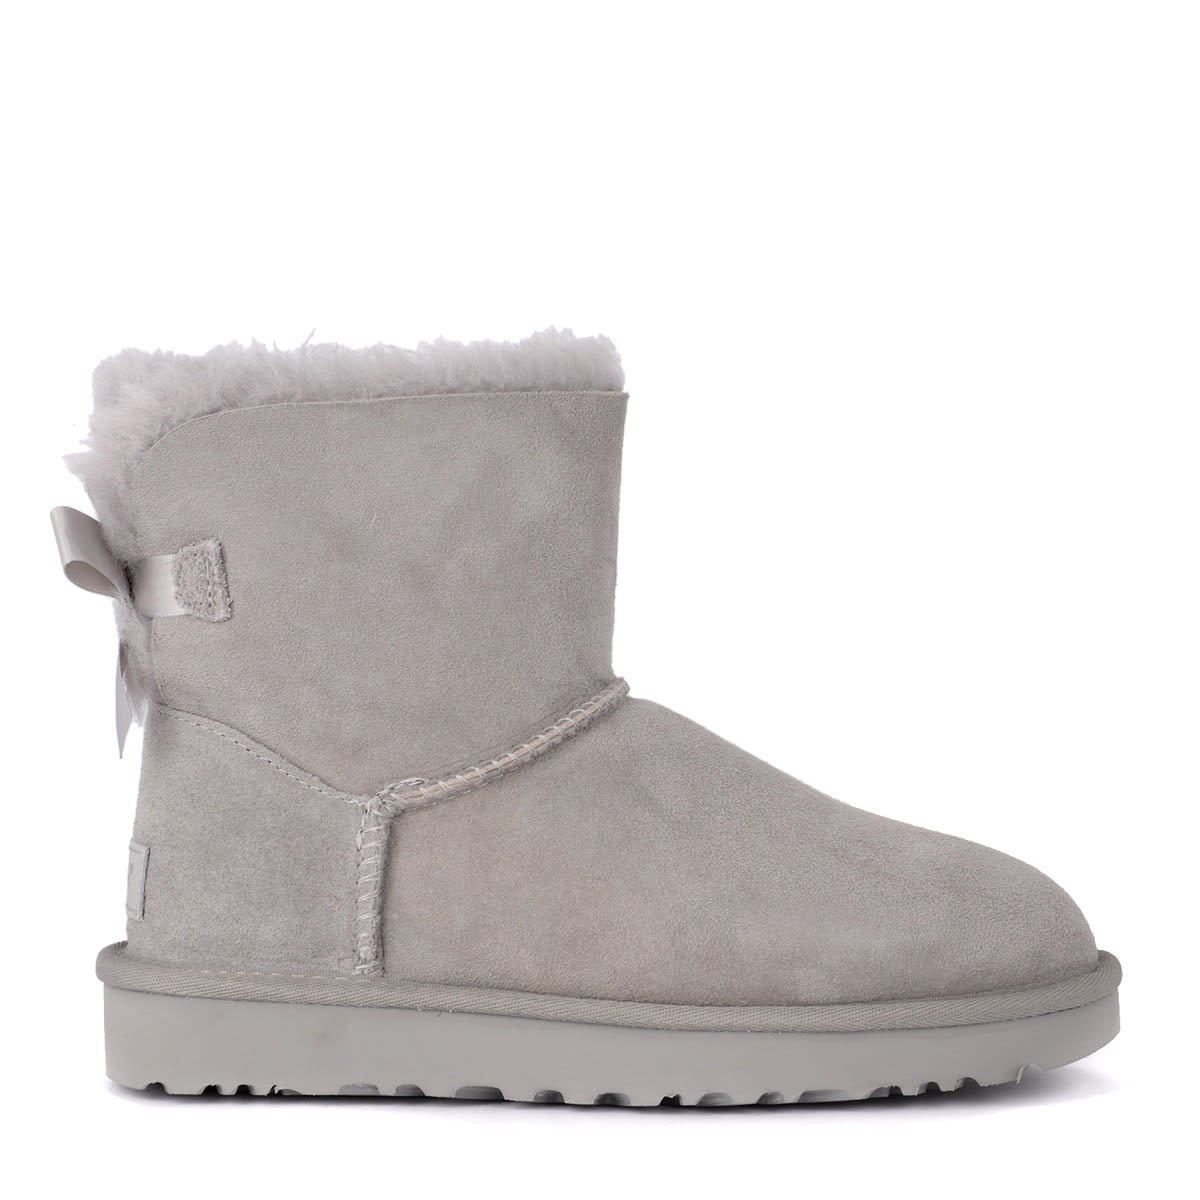 37814c53739 Ugg Bailey Mini Grey Suede Ankle Boots With Bow.